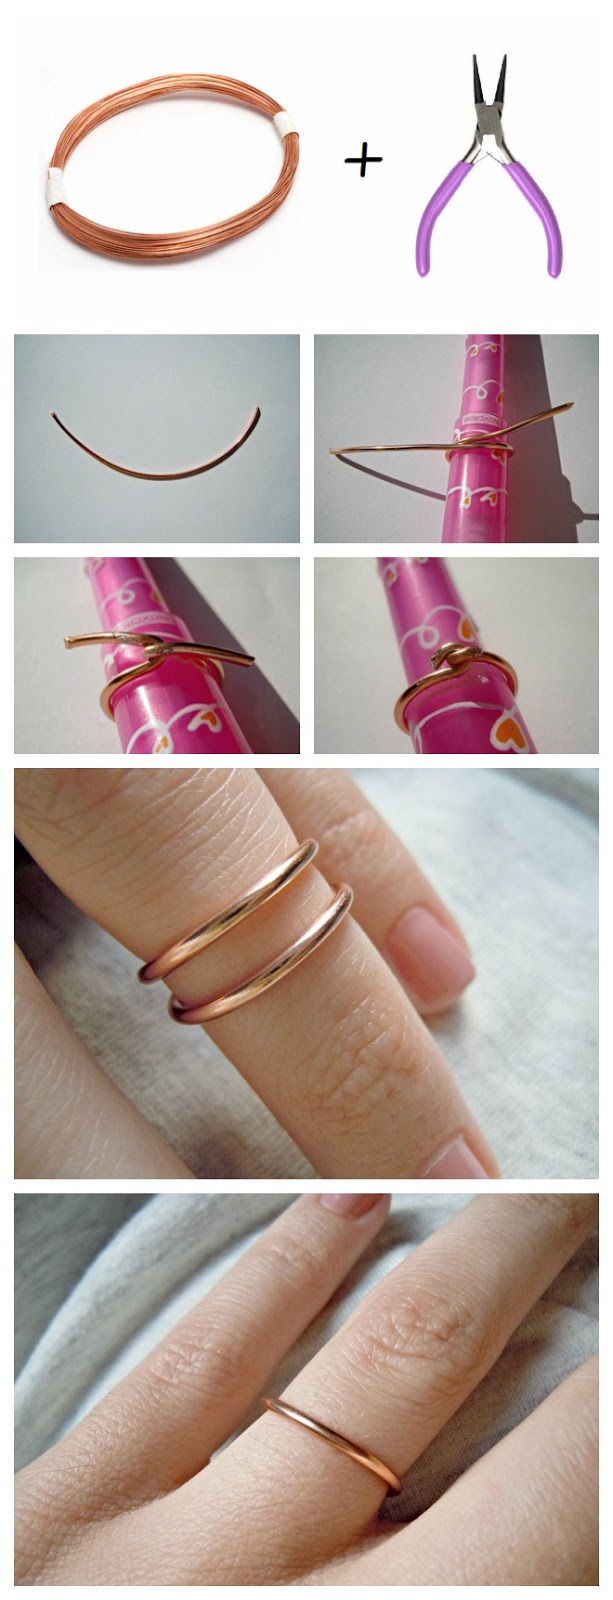 wire-ring-diy-jewelry-anillo-alambre-handmade